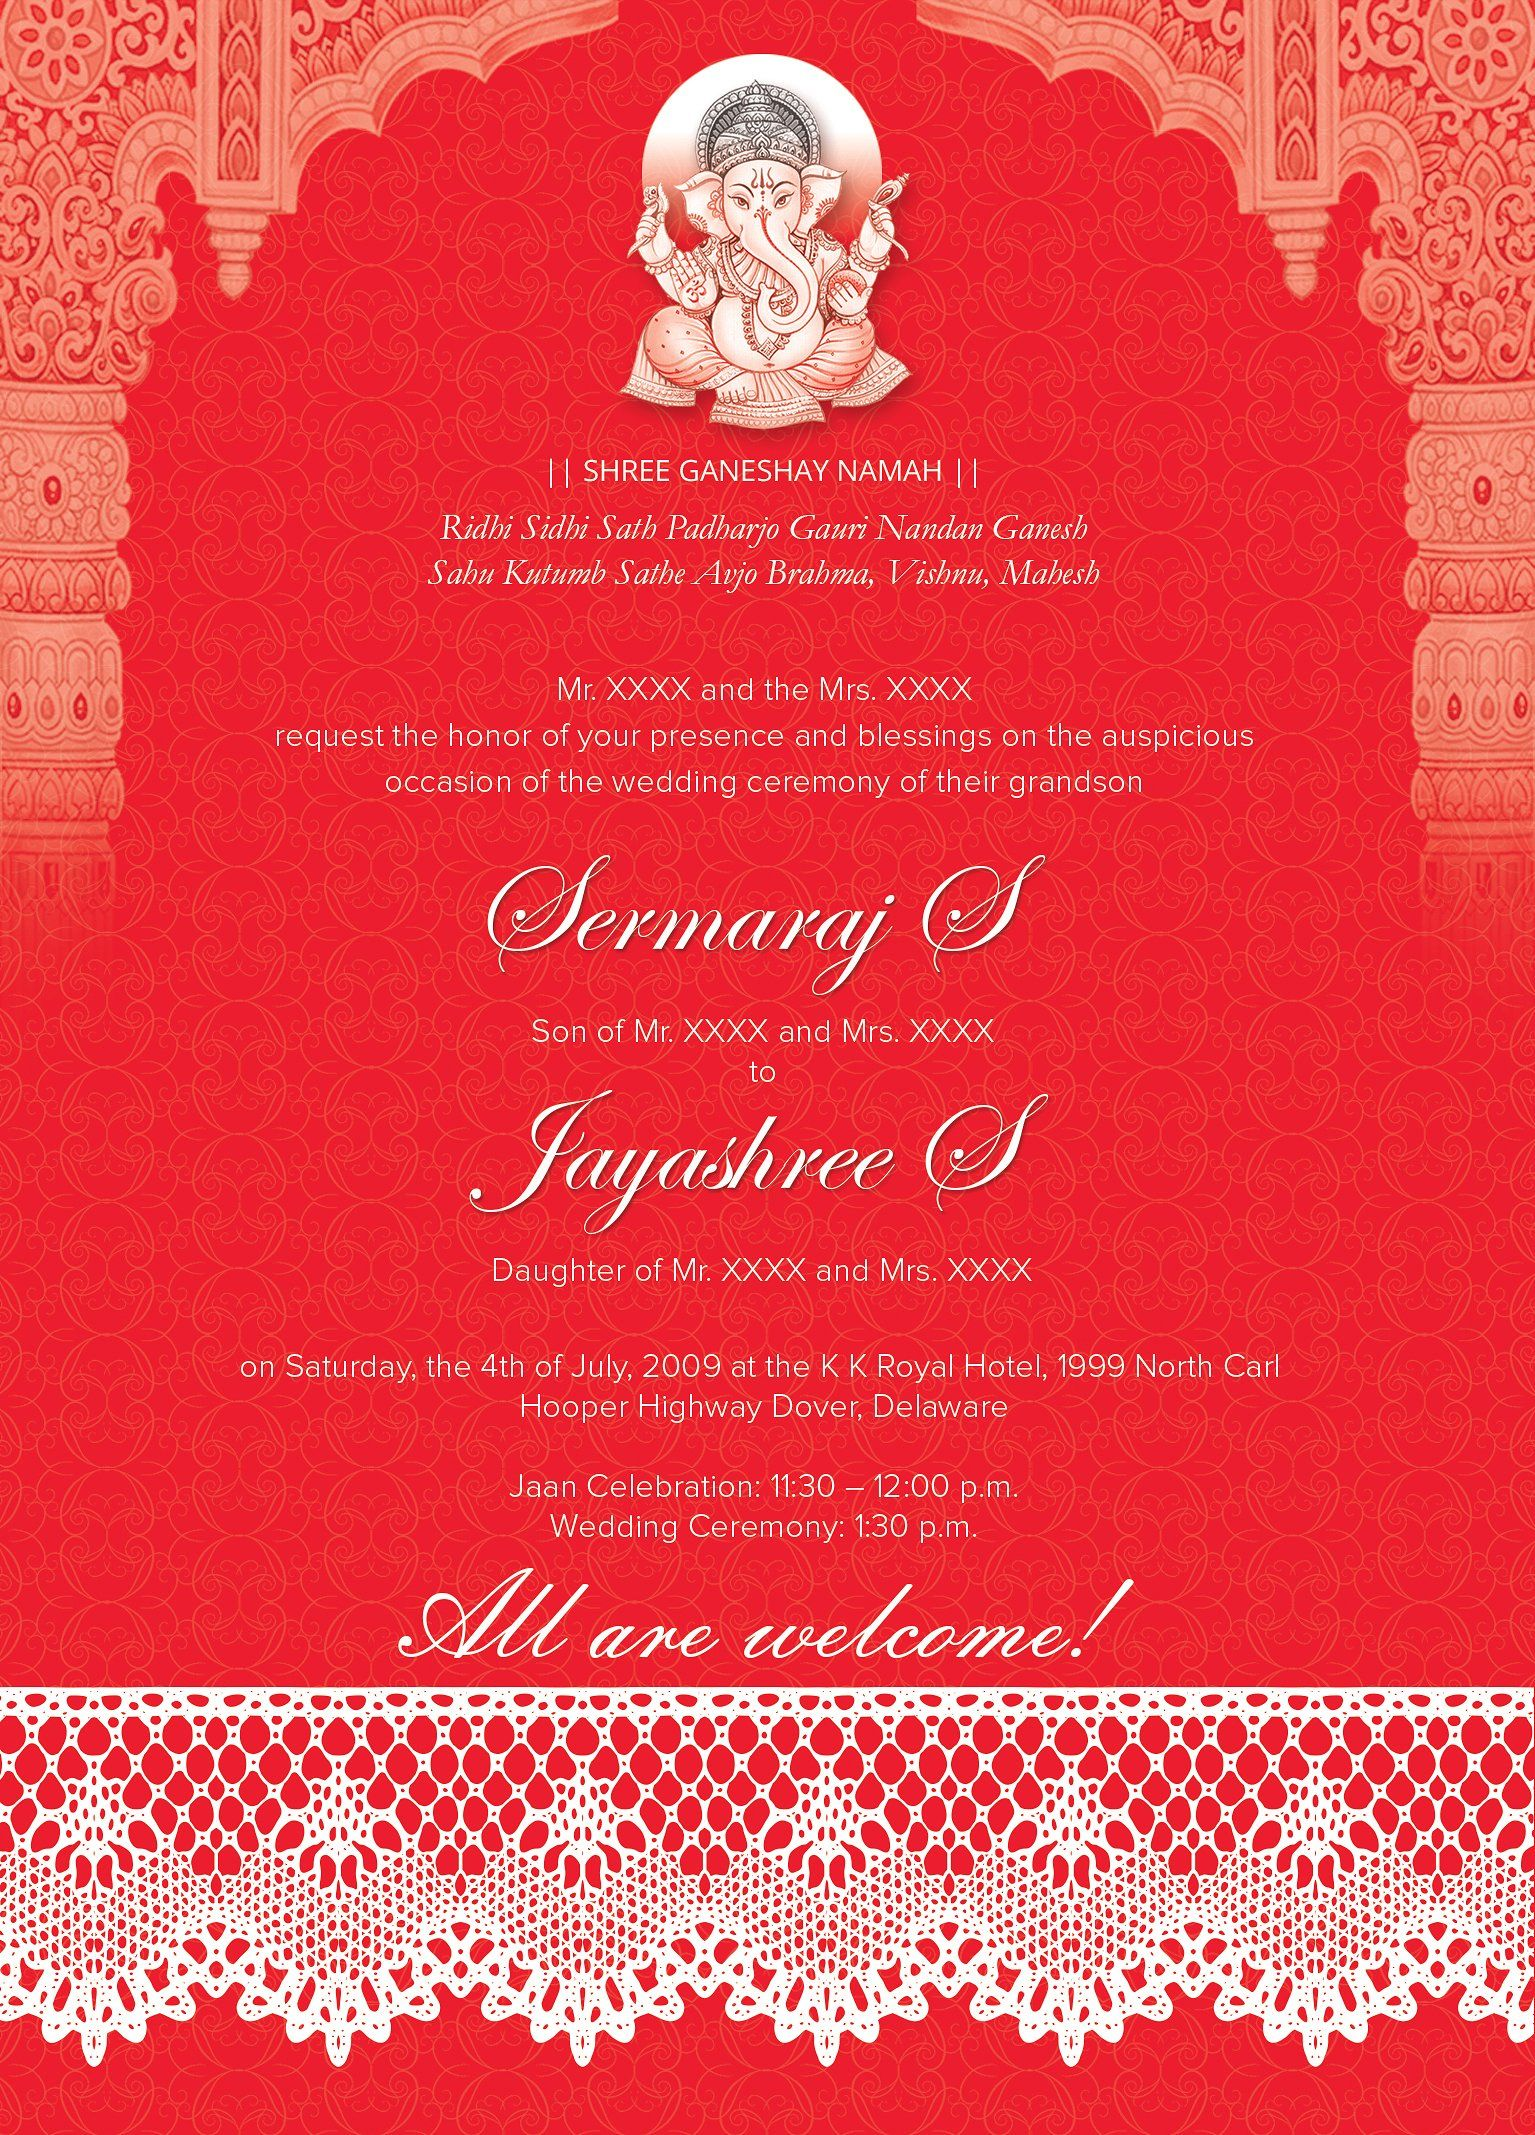 Indian Wedding Card 01 3 colors by Studio Designs on